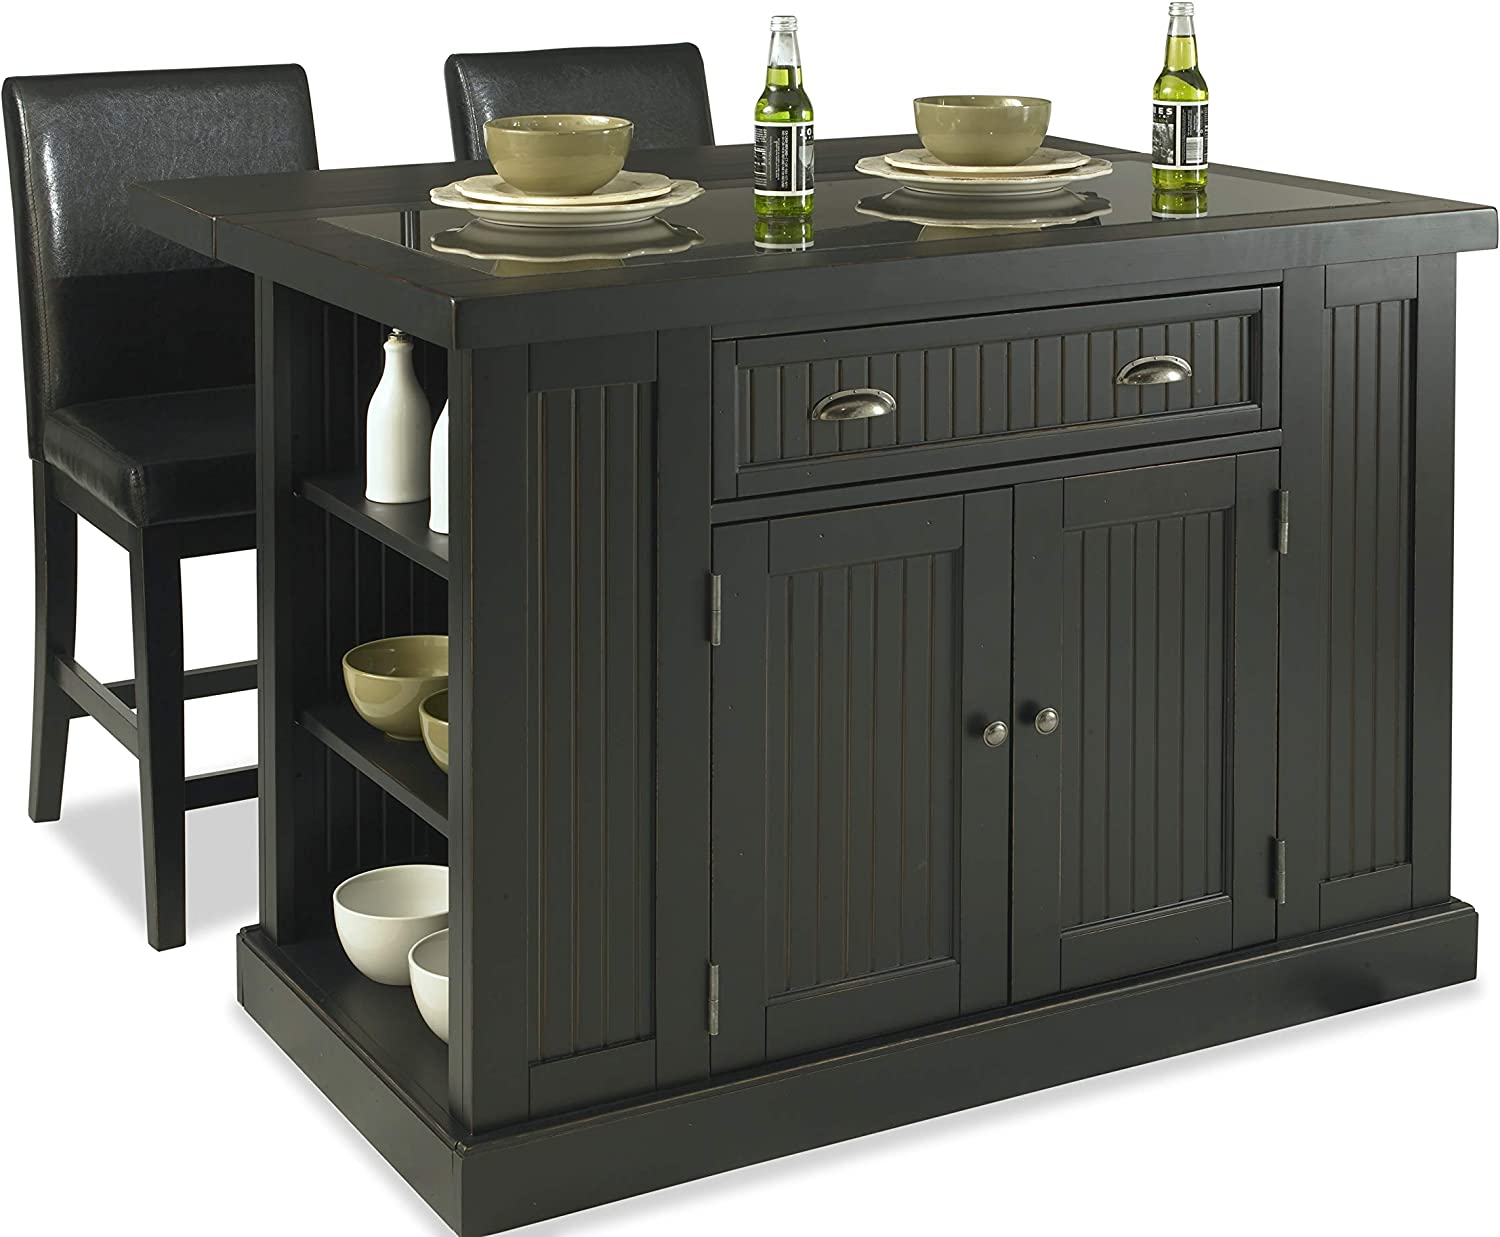 Nantucket Distressed Black Kitchen Island and Stools by Home Styles